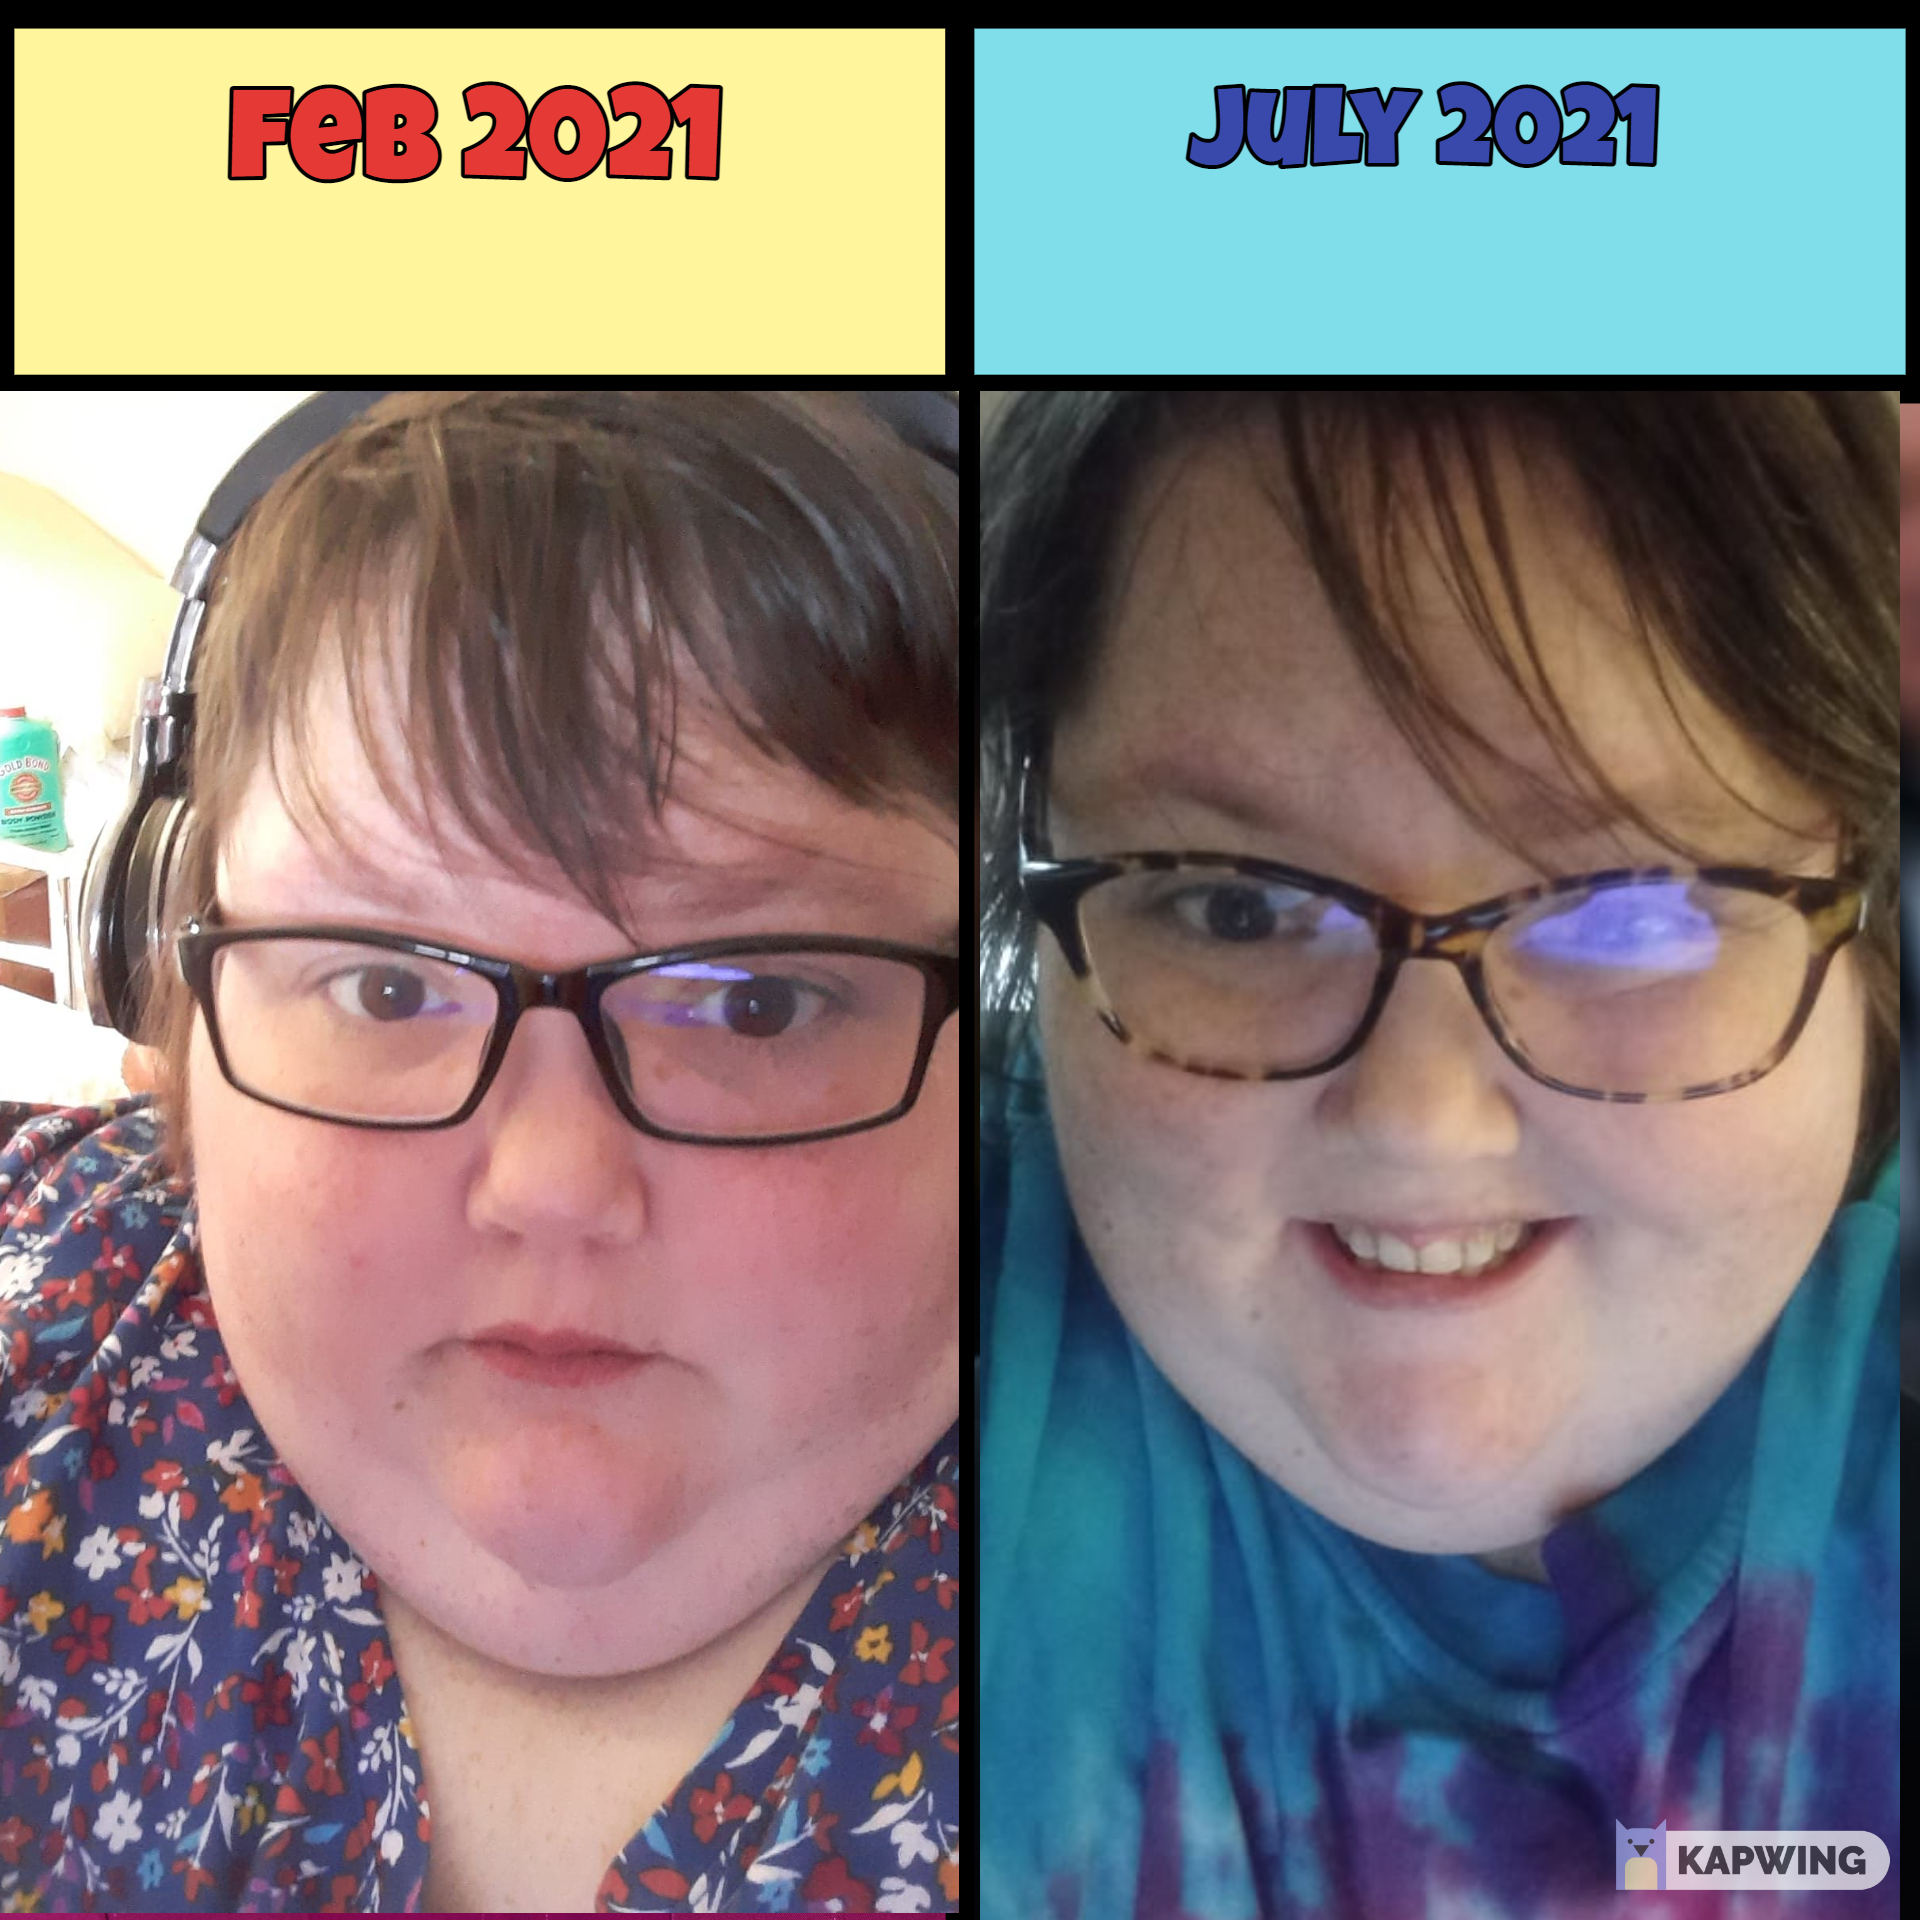 5 feet 5 Female 83 lbs Fat Loss Before and After 621 lbs to 538 lbs